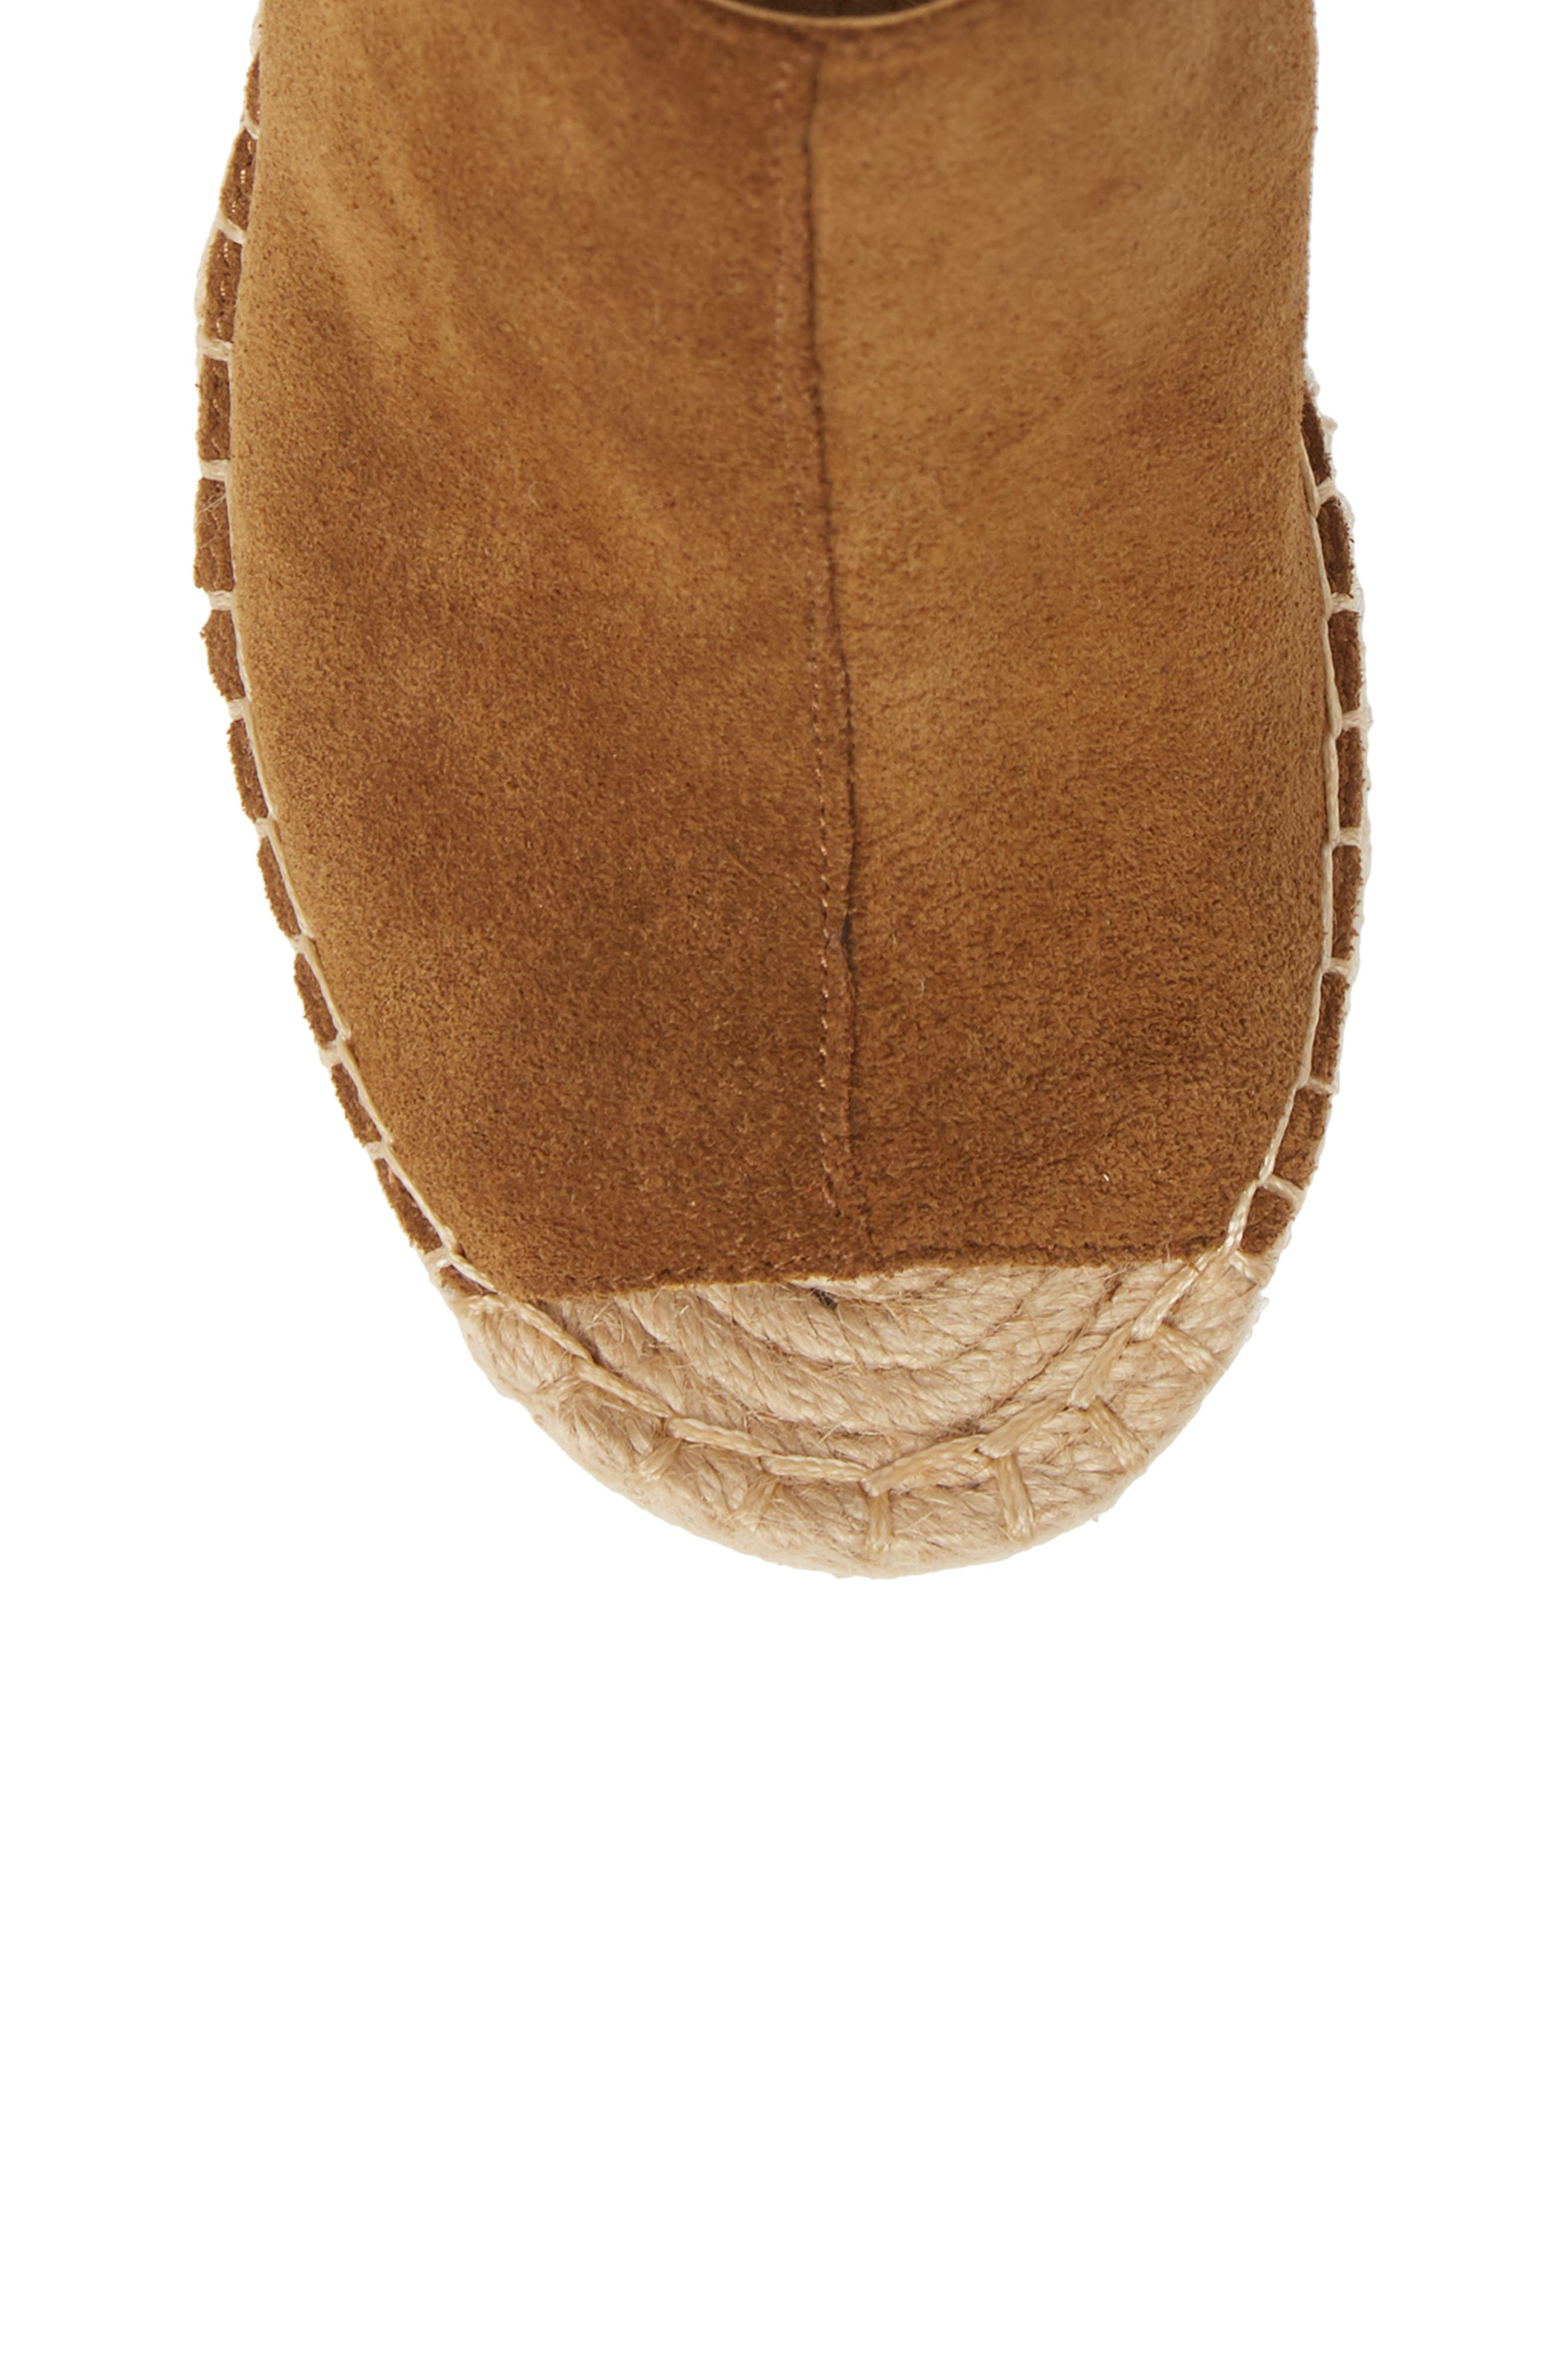 KENNETH COLE NEW YORK, 'Olivia' Espadrille Wedge Sandal, Alternate thumbnail 5, color, RUST SUEDE